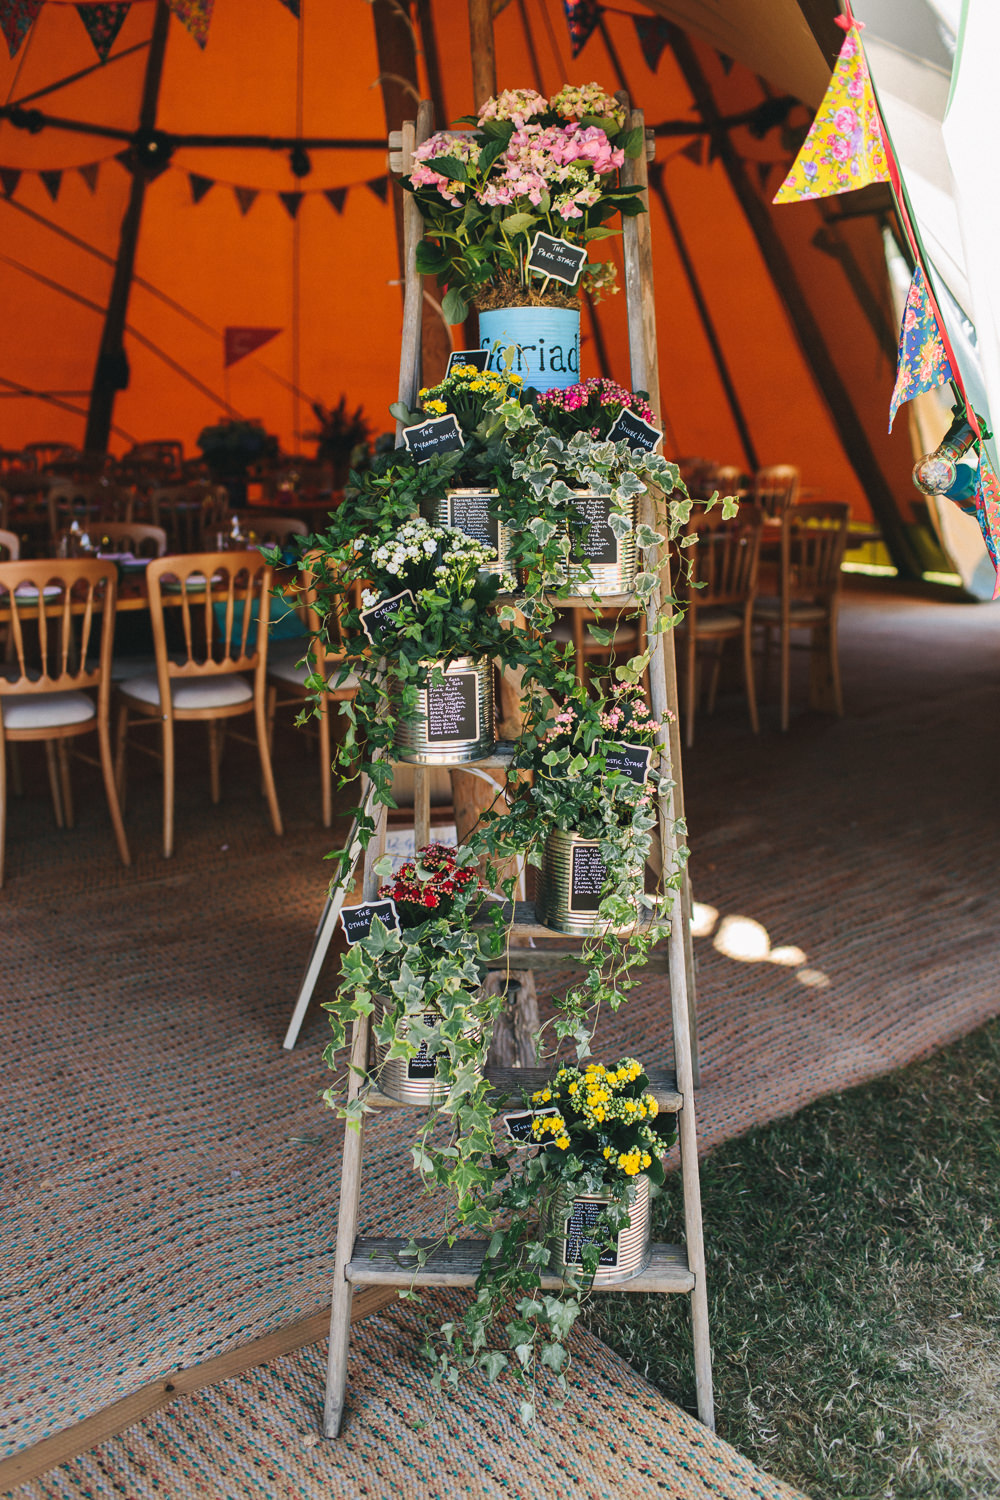 Stepladder Table Plan Ivy Chalk Tin Floral Flowers Plants Bach Wen Farm Wedding Jessica O'Shaughnessy Photography